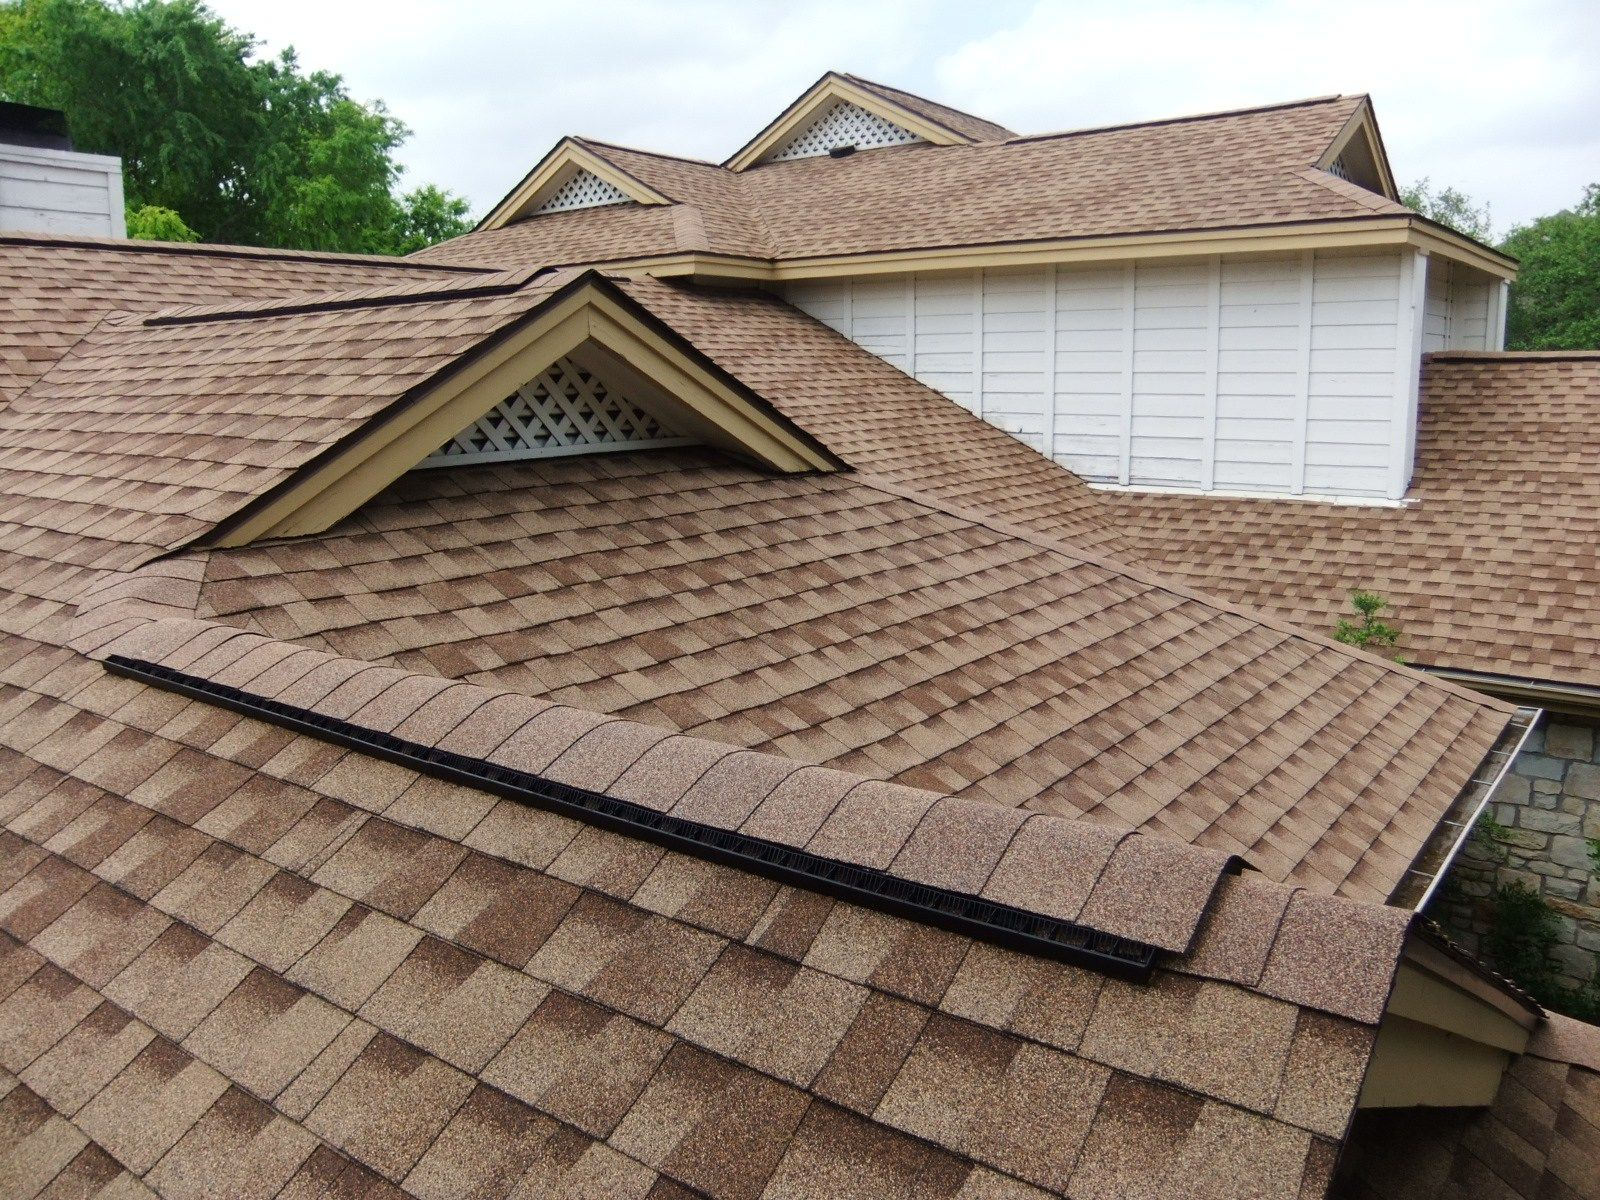 Houses, Fascinating Shingles Types Of Roofs Brown Color: Types of Roofs  Coverings